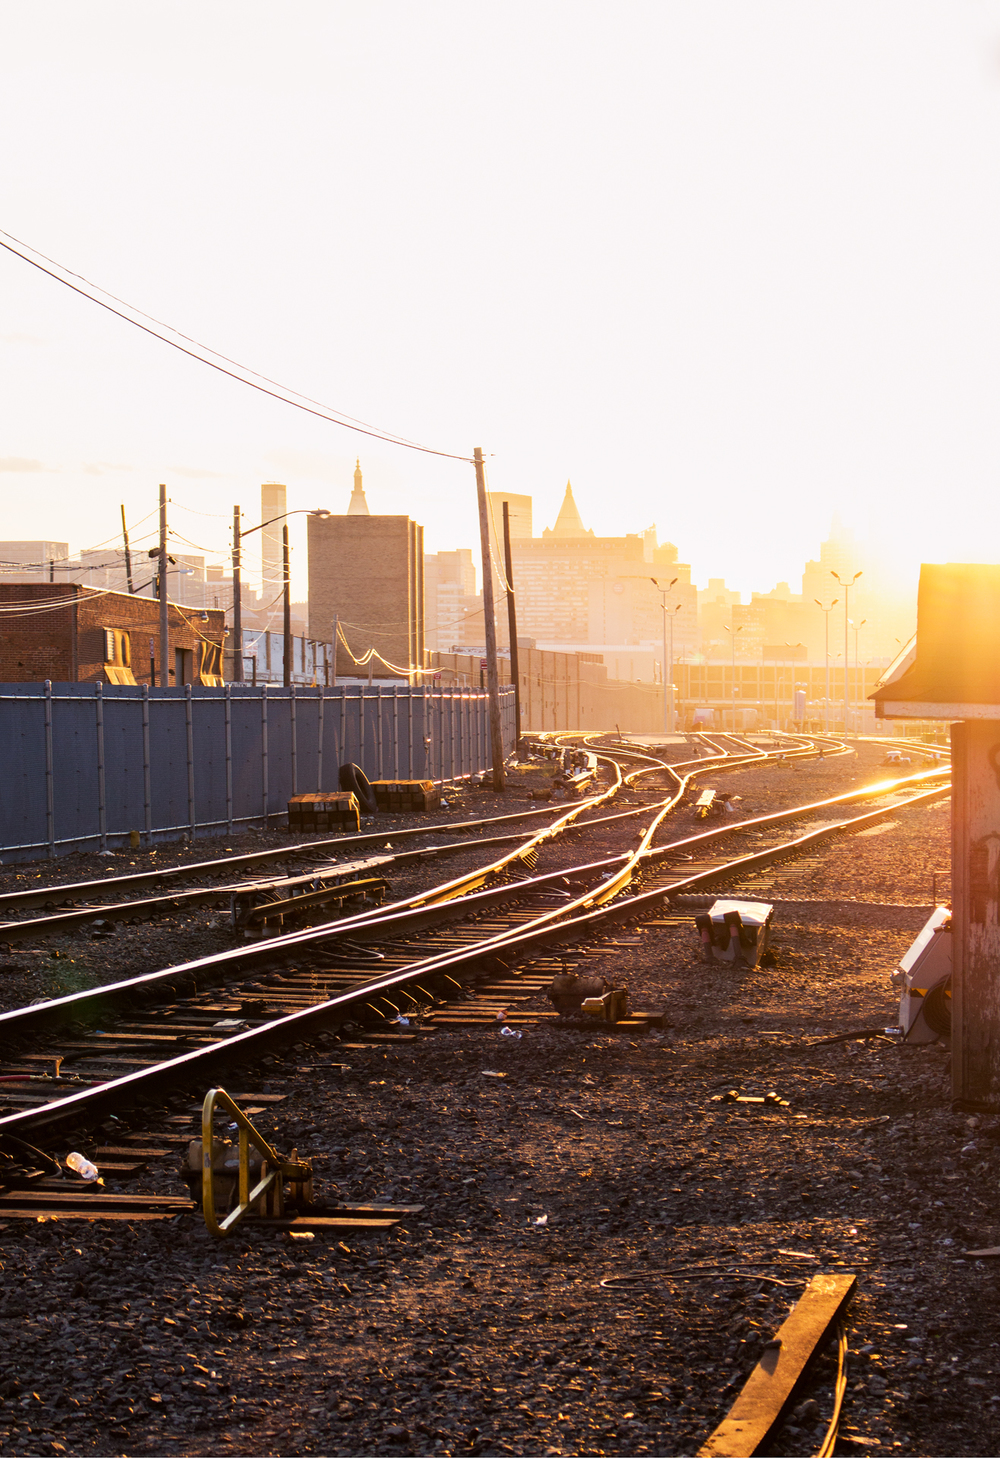 April.18.2015  | At the end of the tracks was the sun, and New York, New York.